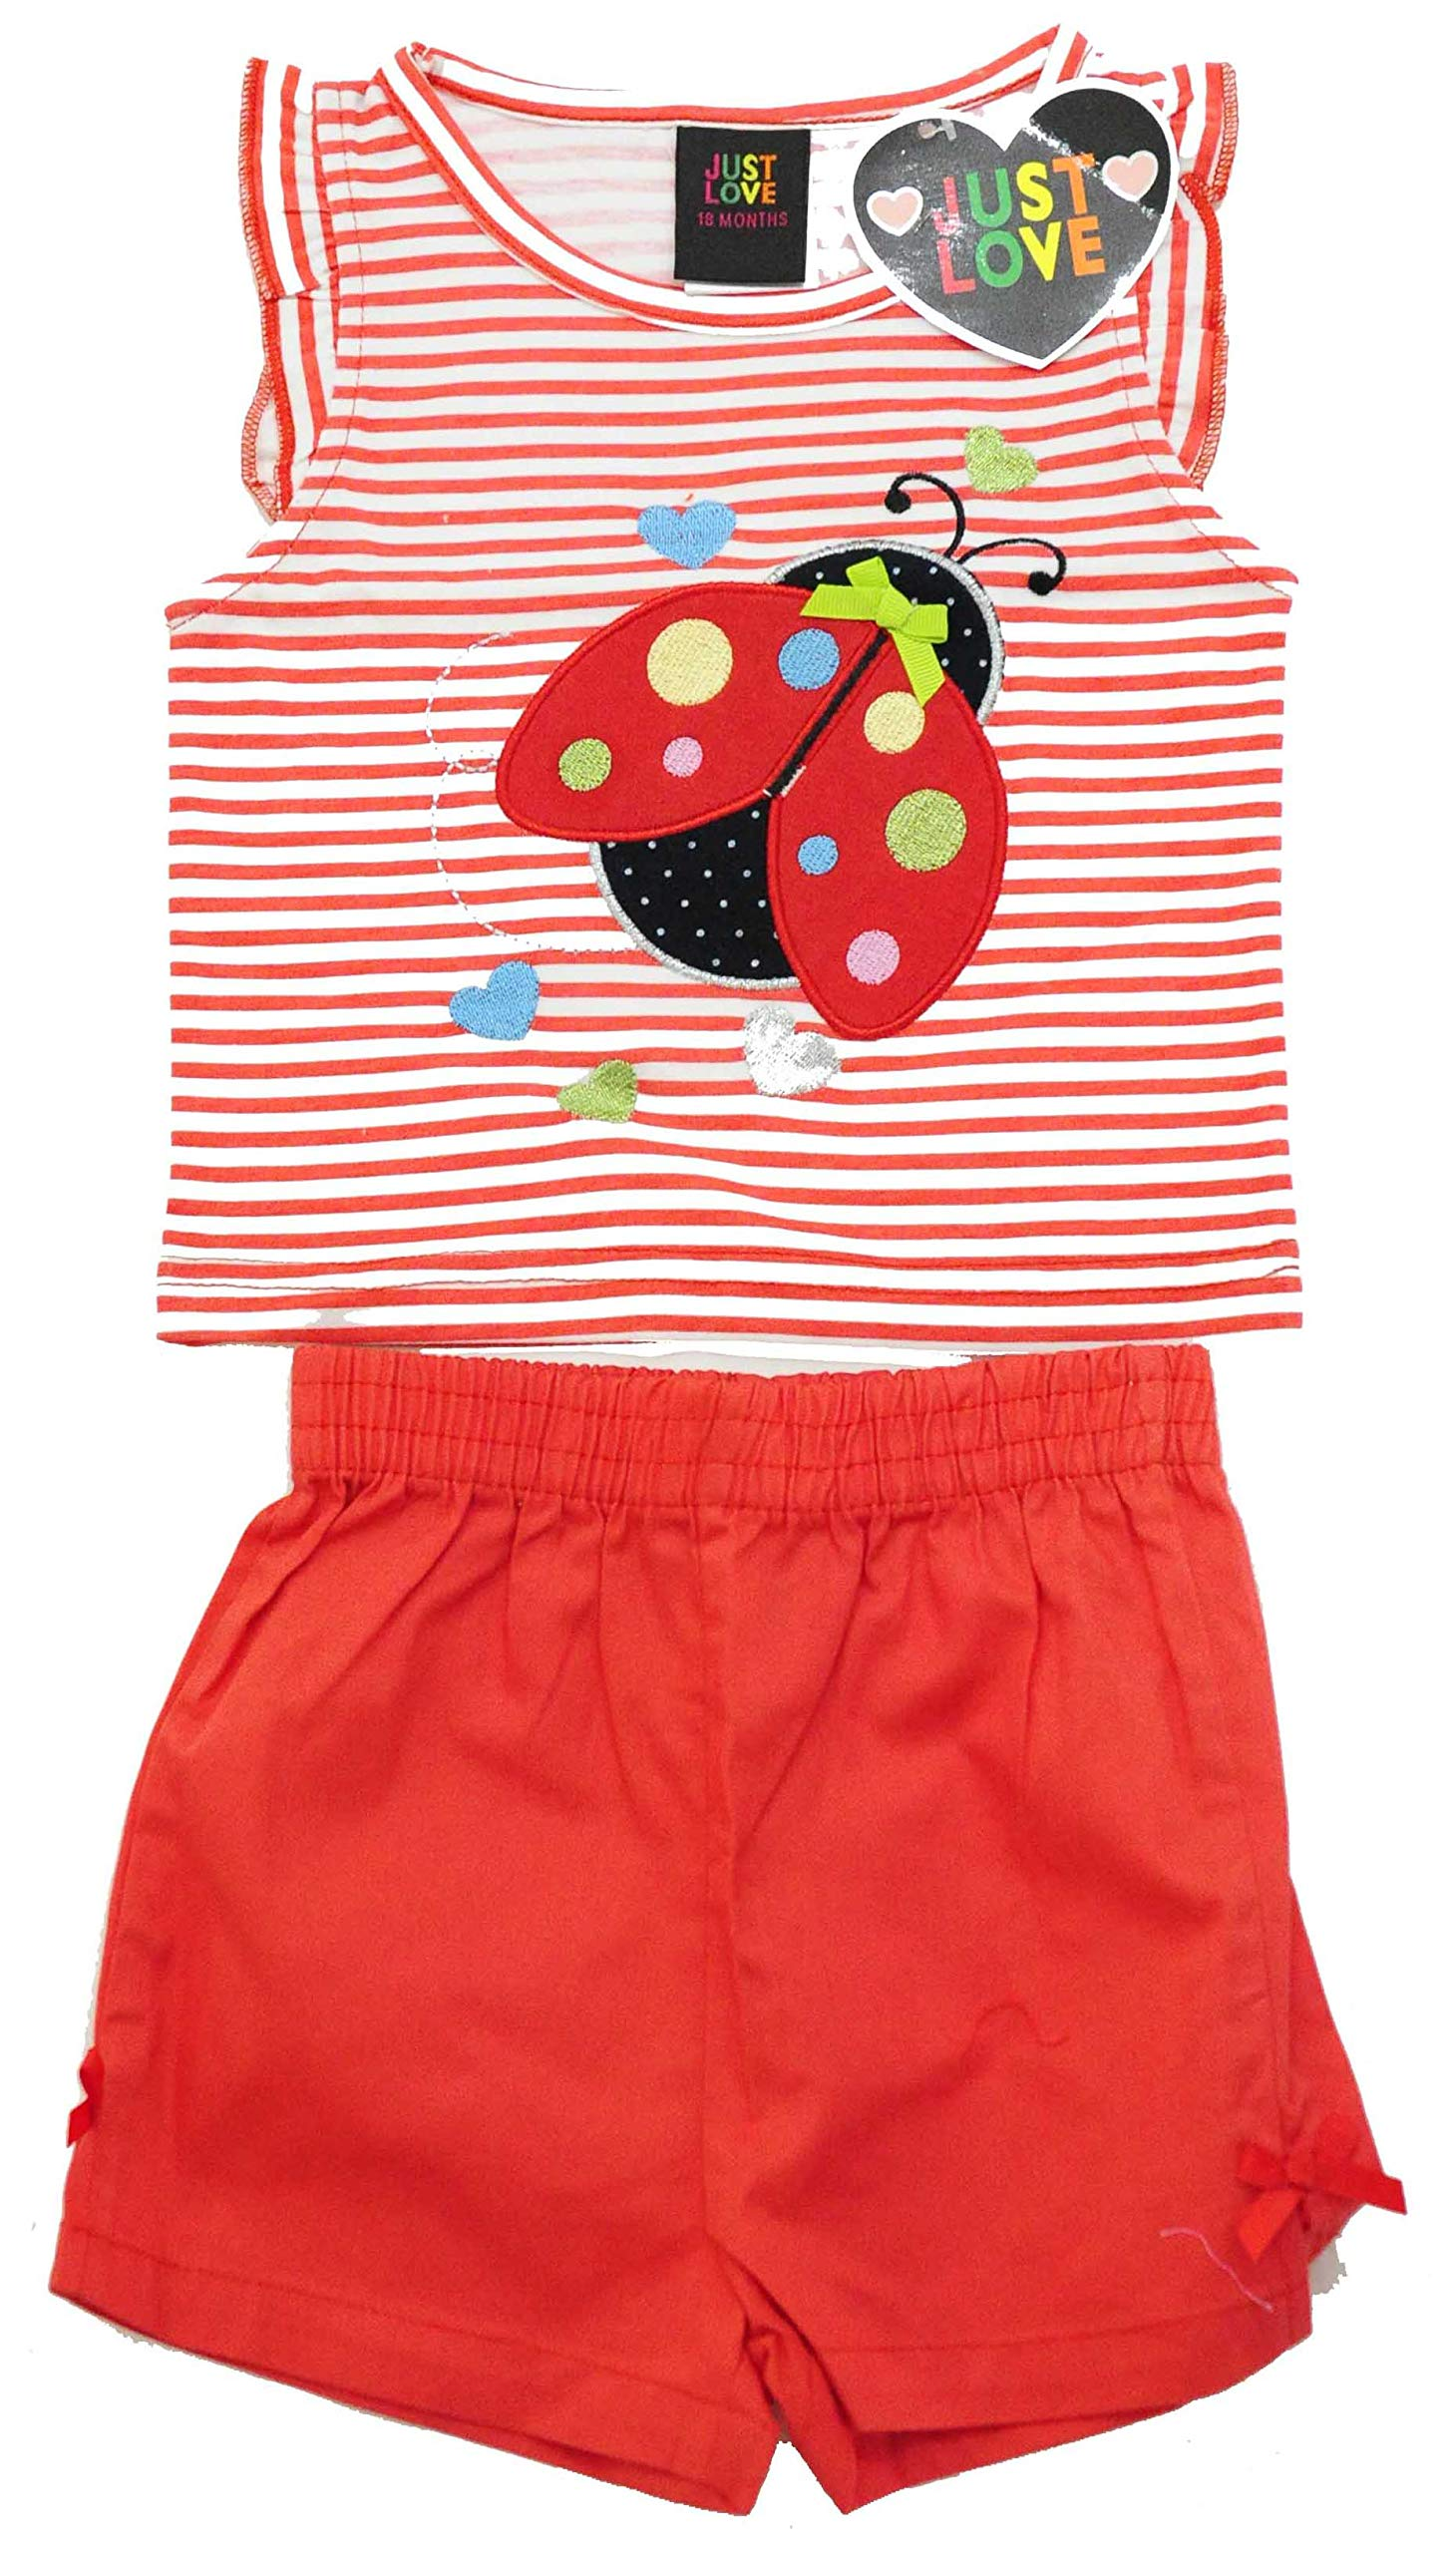 Just Love Two Piece Girls Shorts Set, 4001-Red Bug, 2T